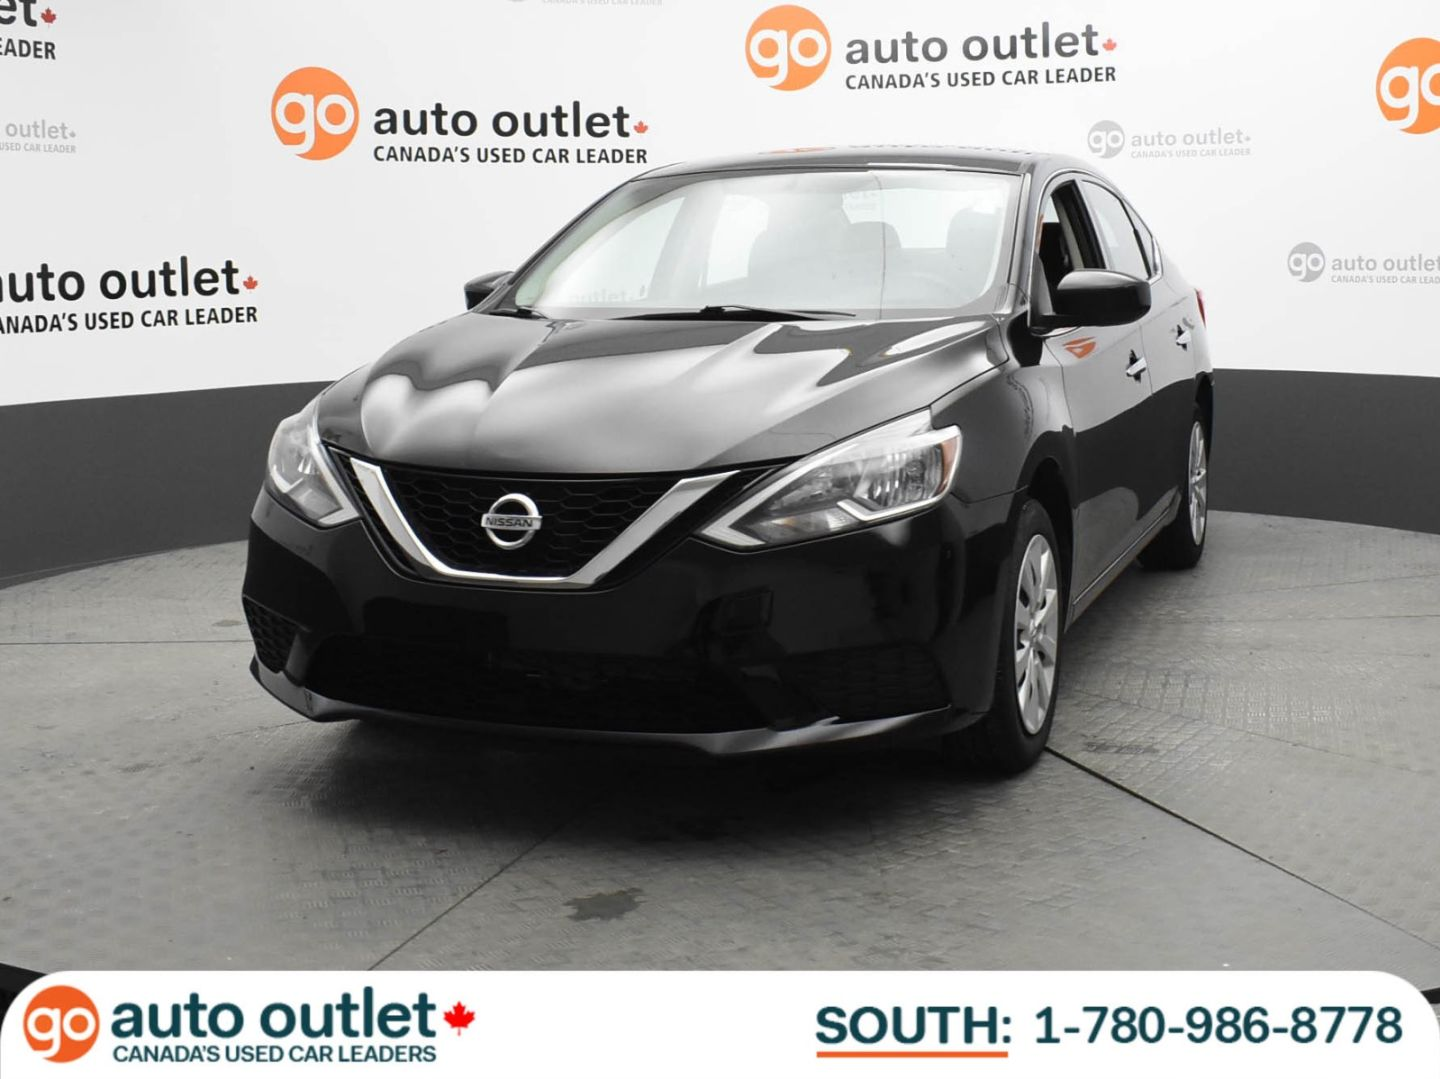 2016 Nissan Sentra SV for sale in Leduc, Alberta